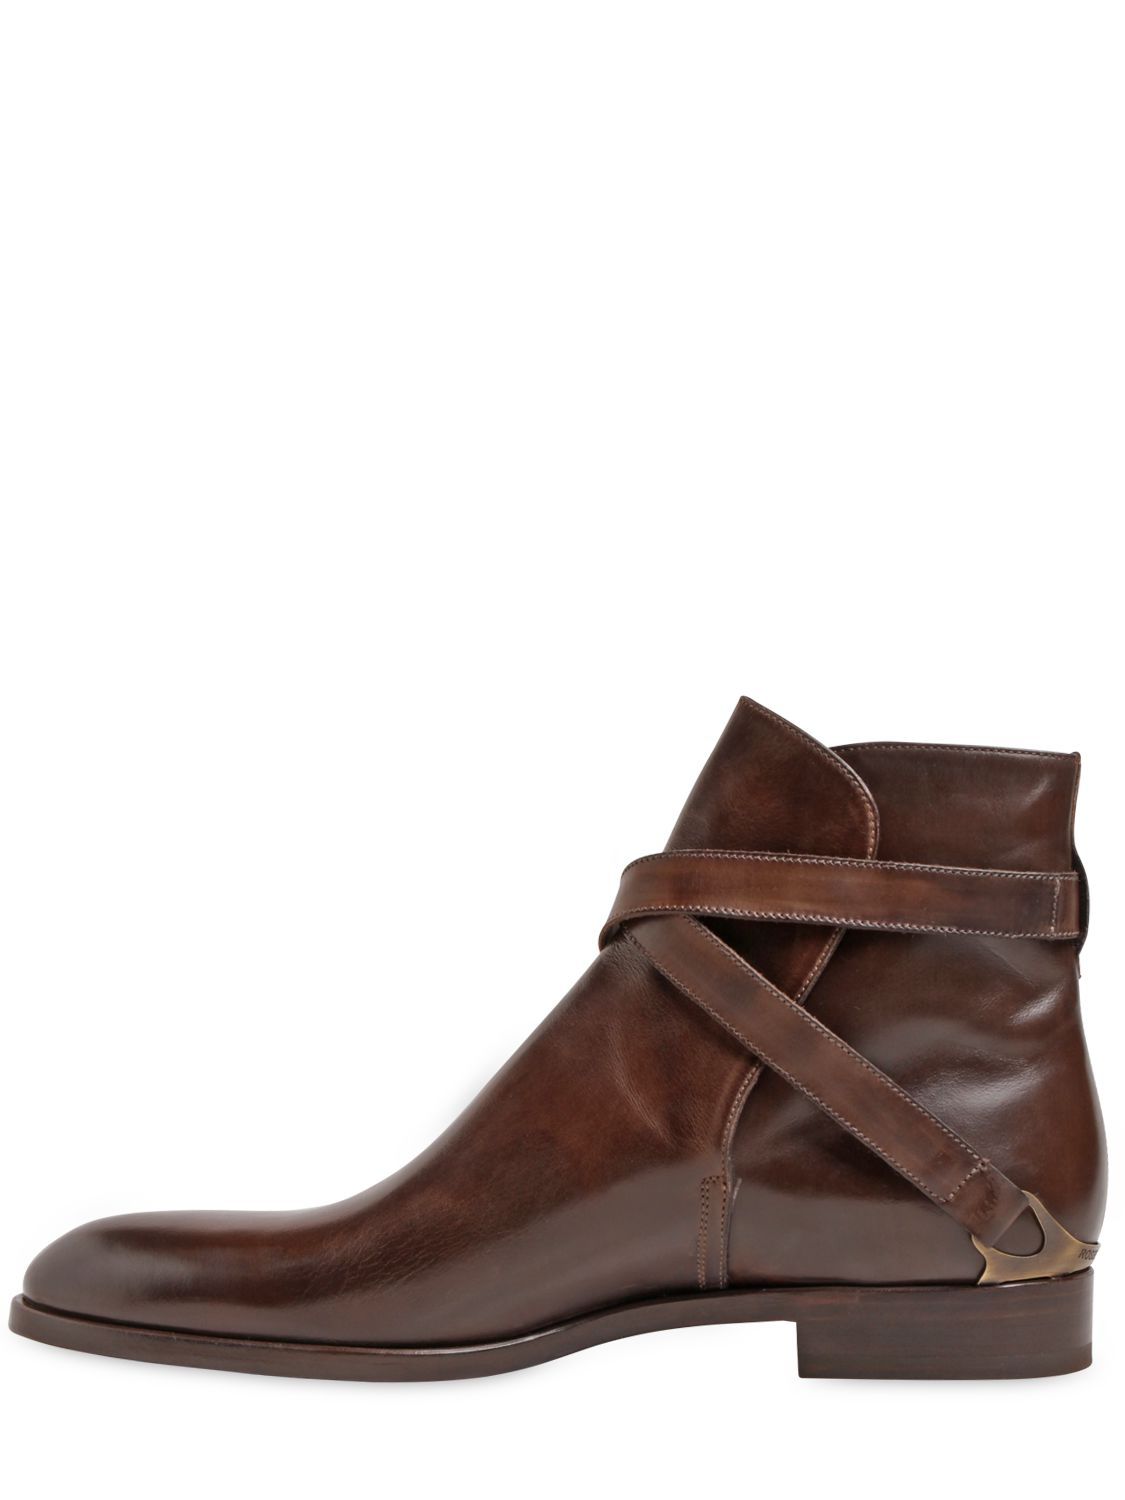 Fratelli Rossetti Leather Ankle Boots Ql14n